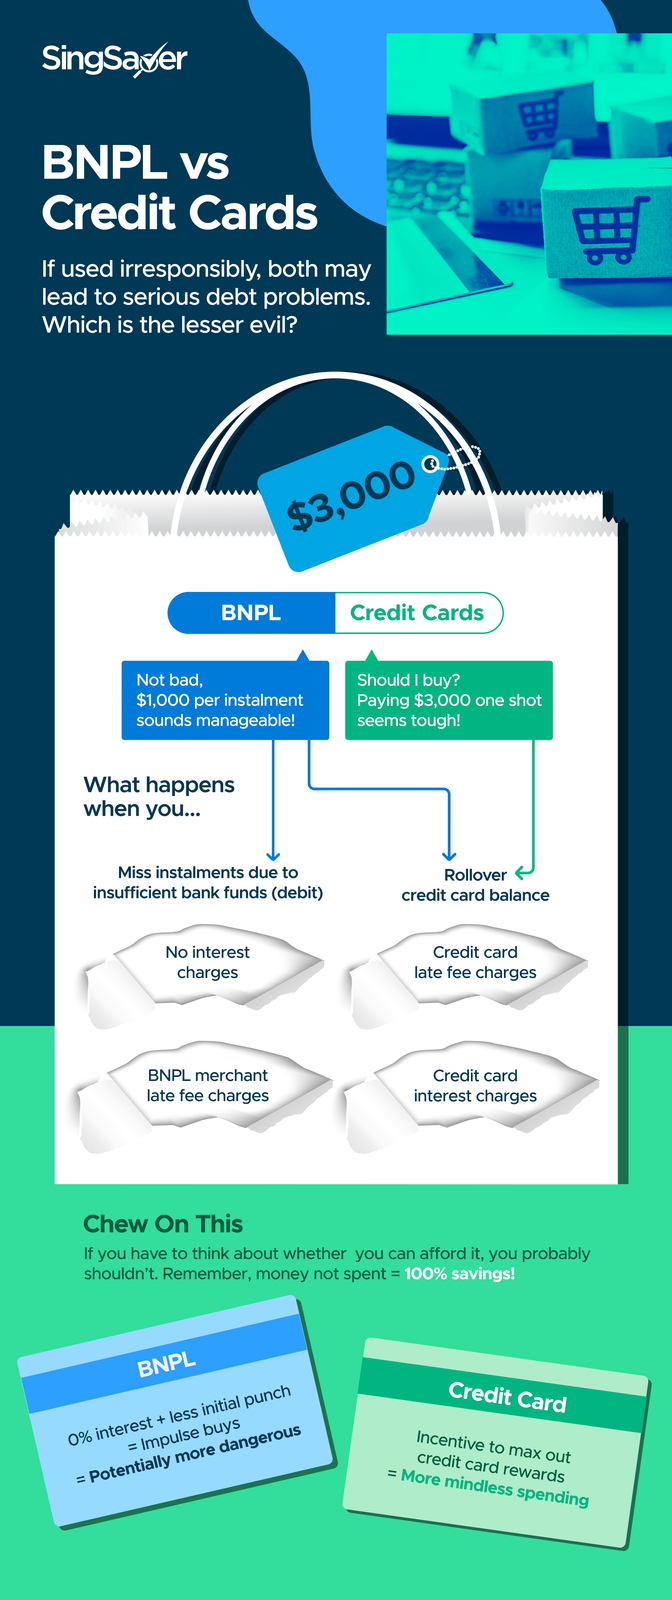 Buy Now, Pay Later vs Credit Cards: Which One's More Dangerous?